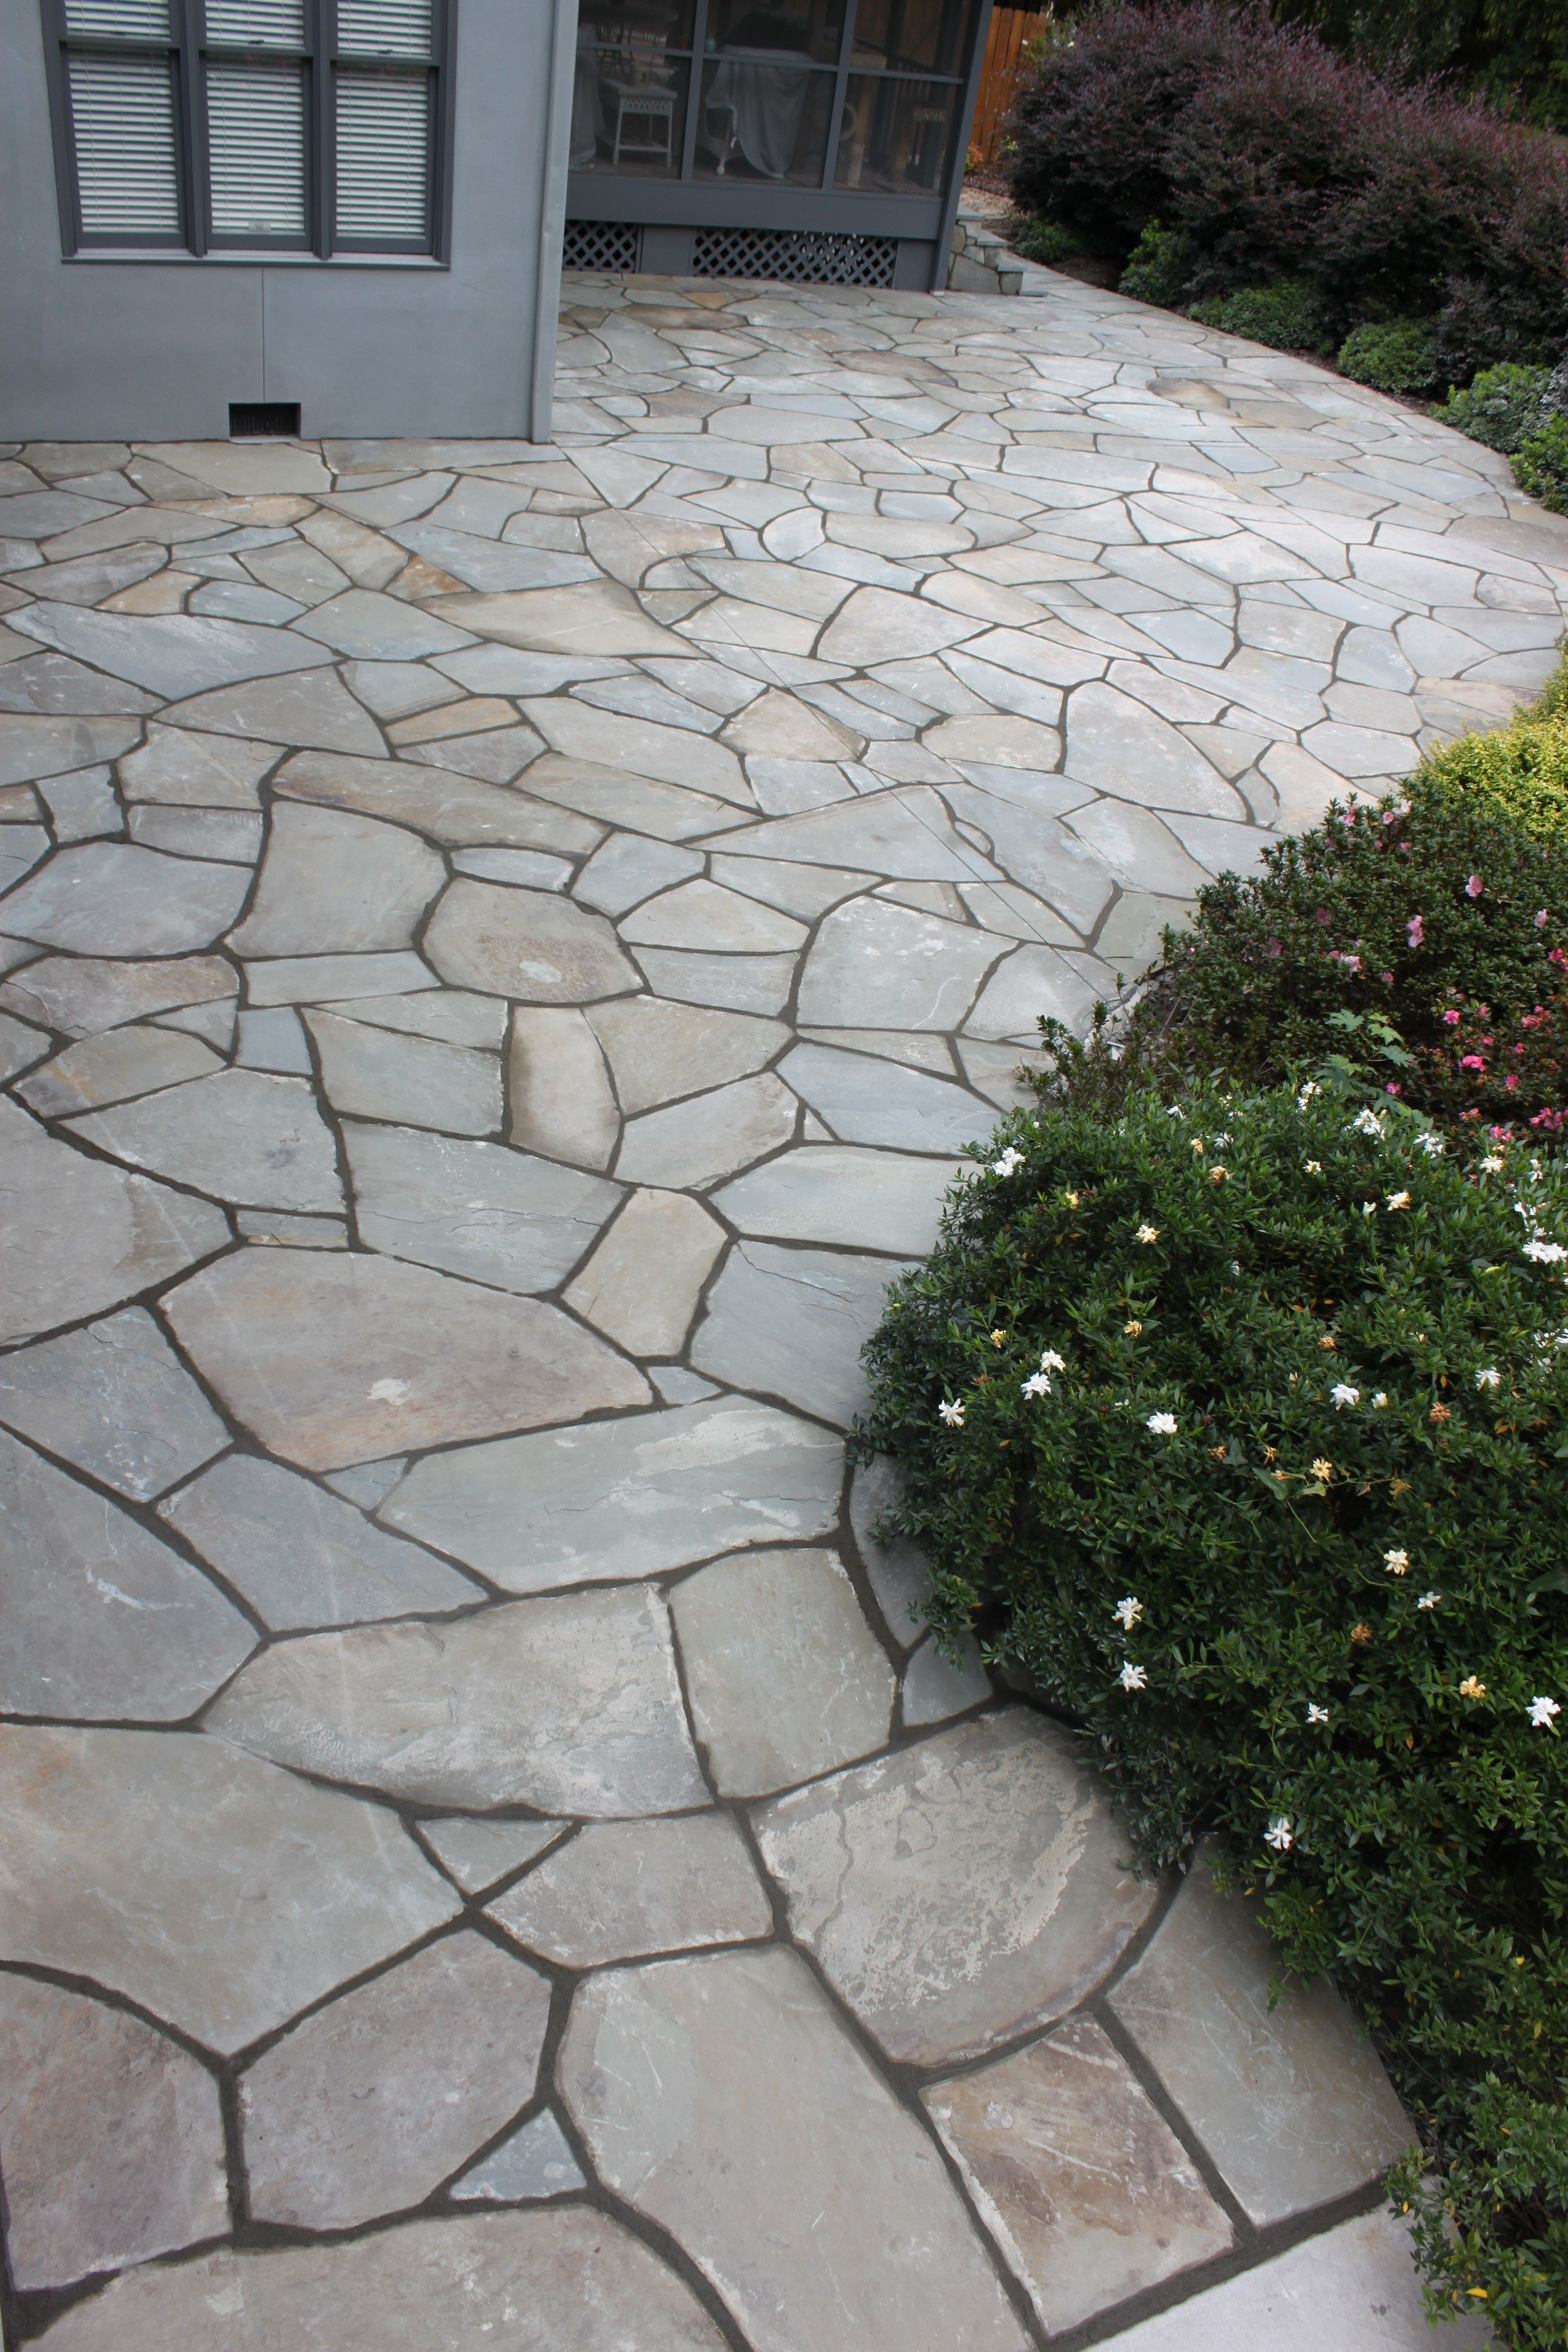 I Would Like To Cover The Ugly Concrete Patio With Stone Or Tile